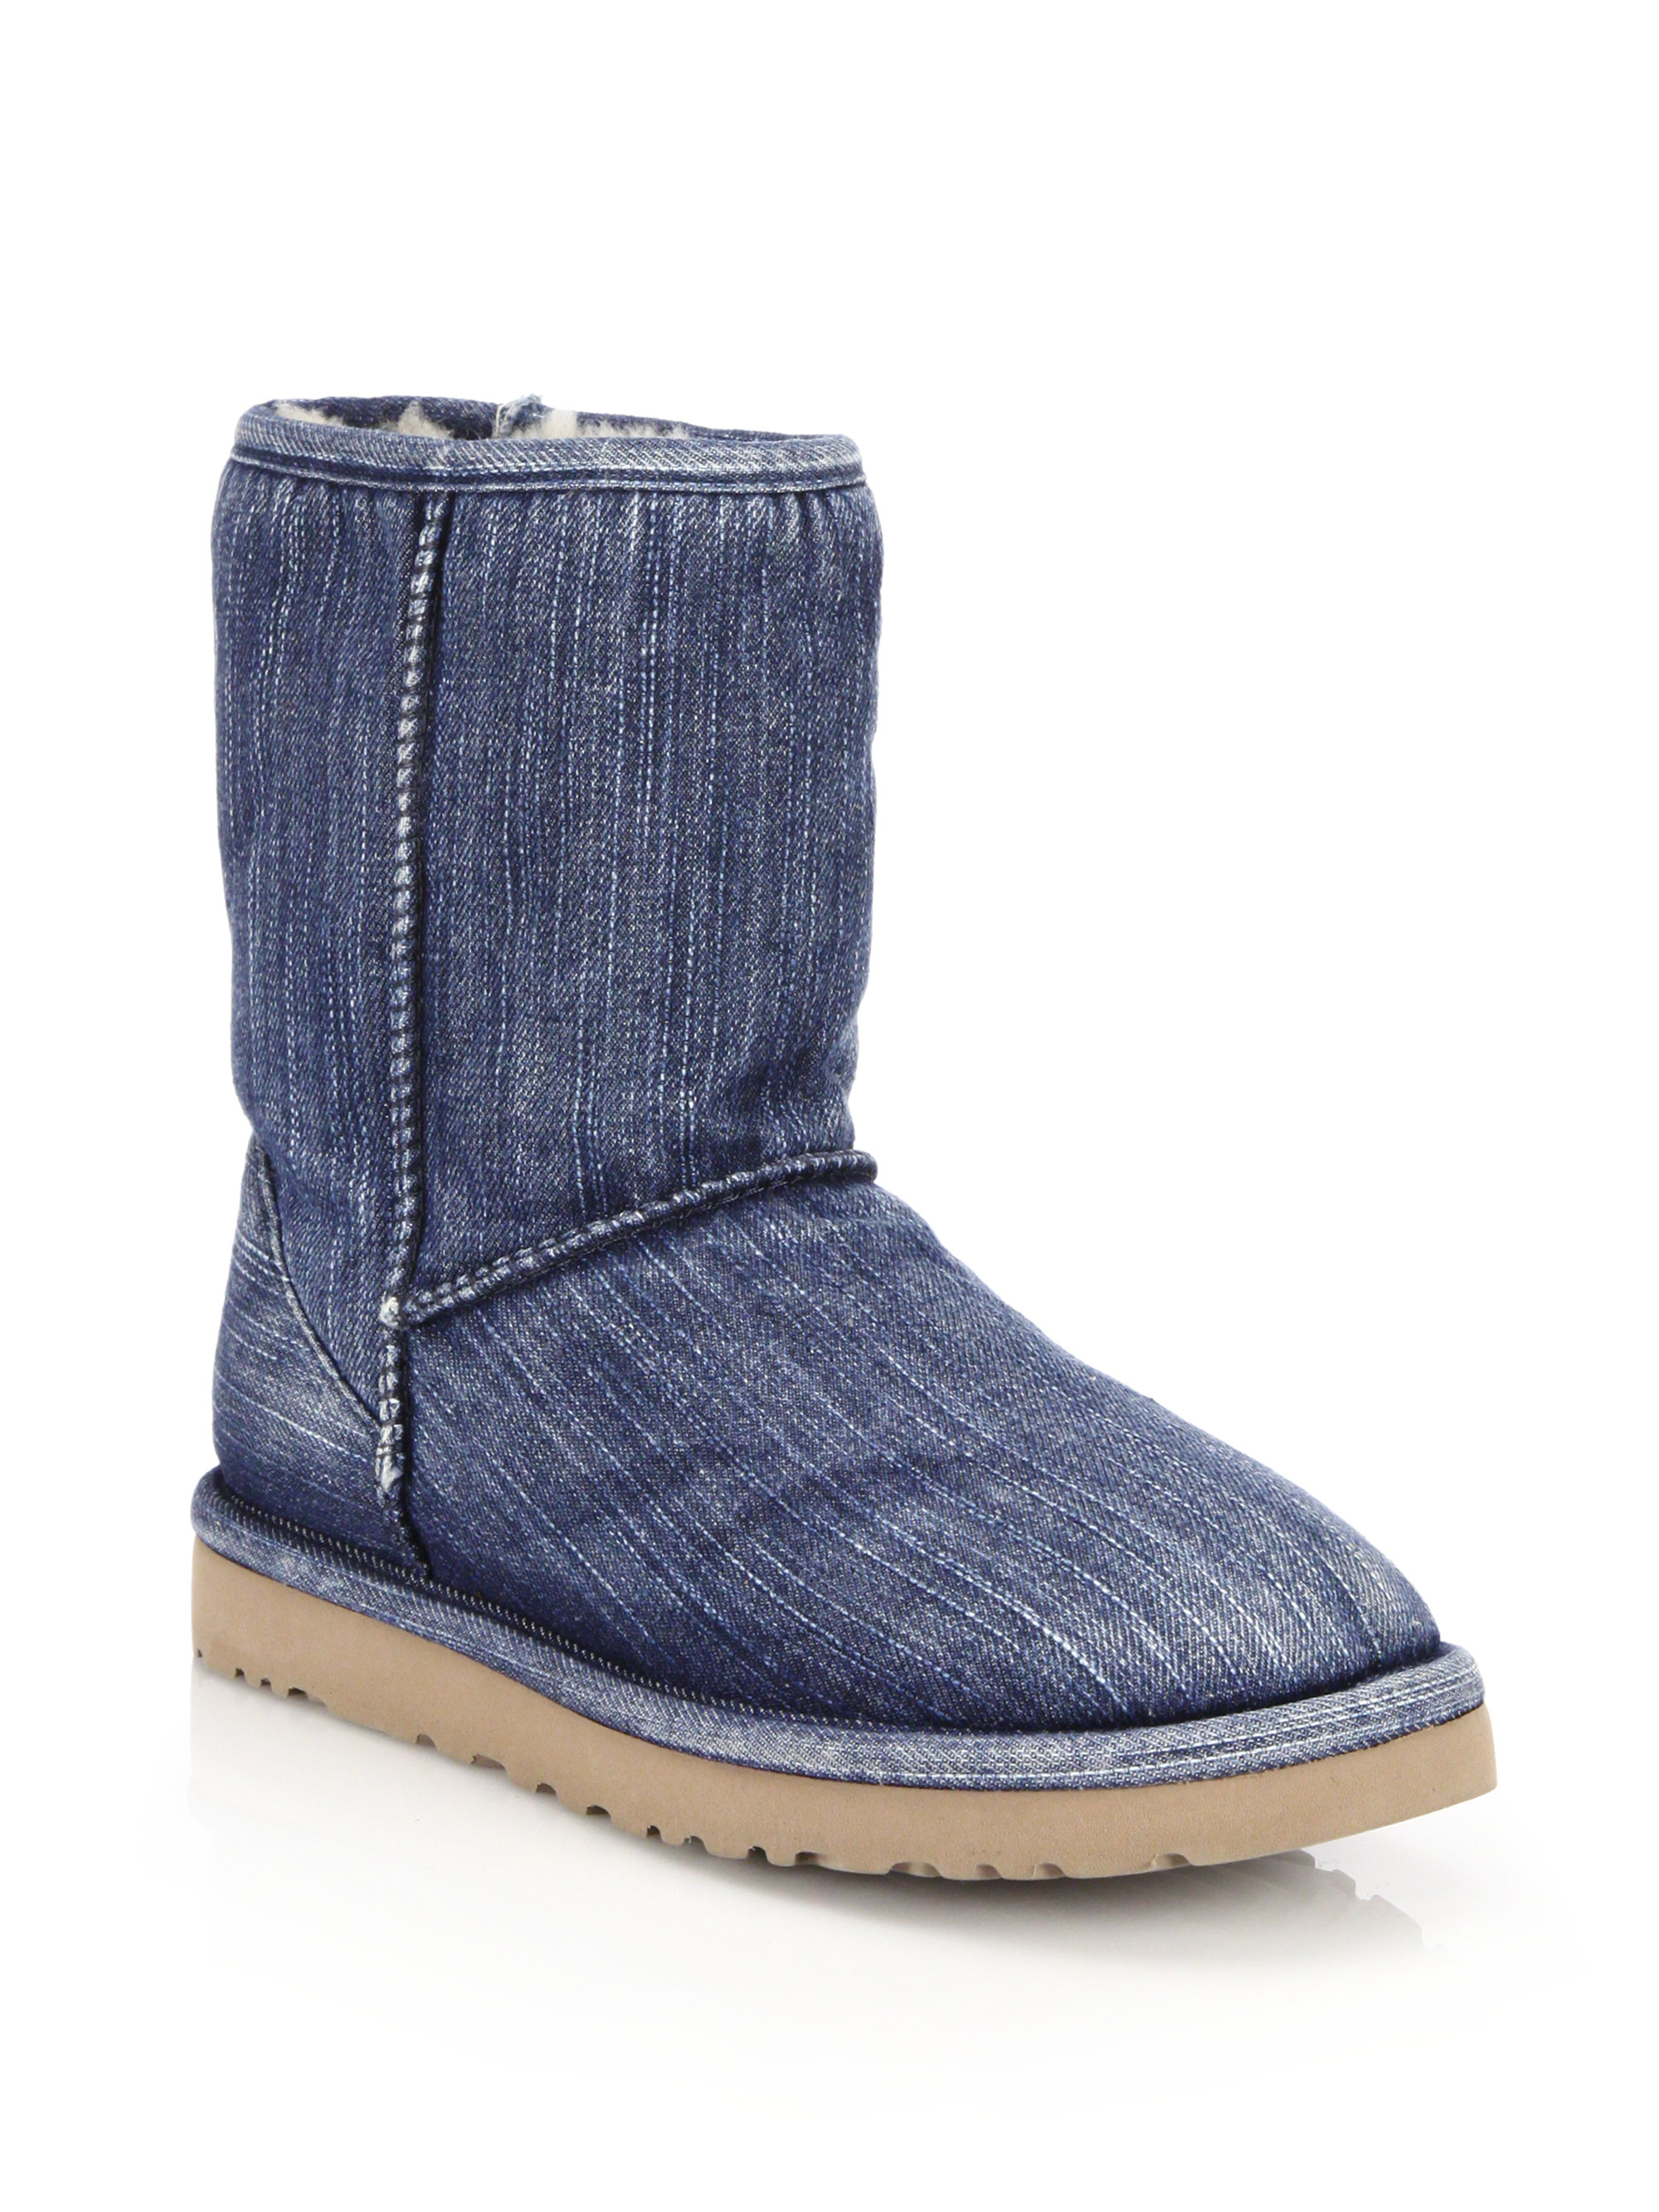 blue jean uggs boots